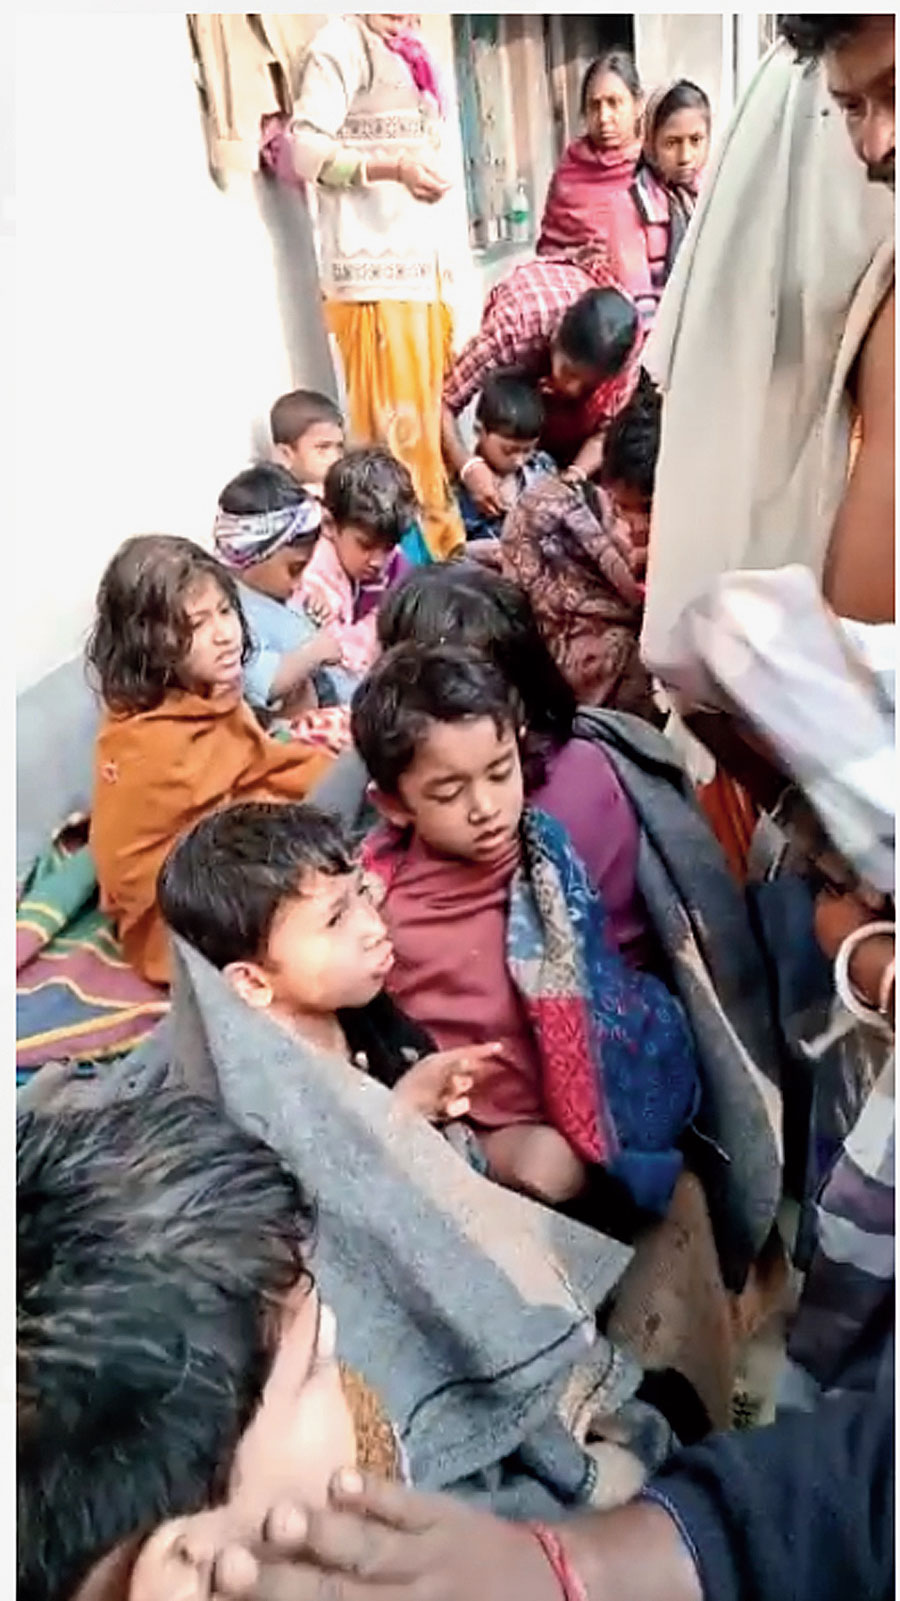 Some of the rescued children